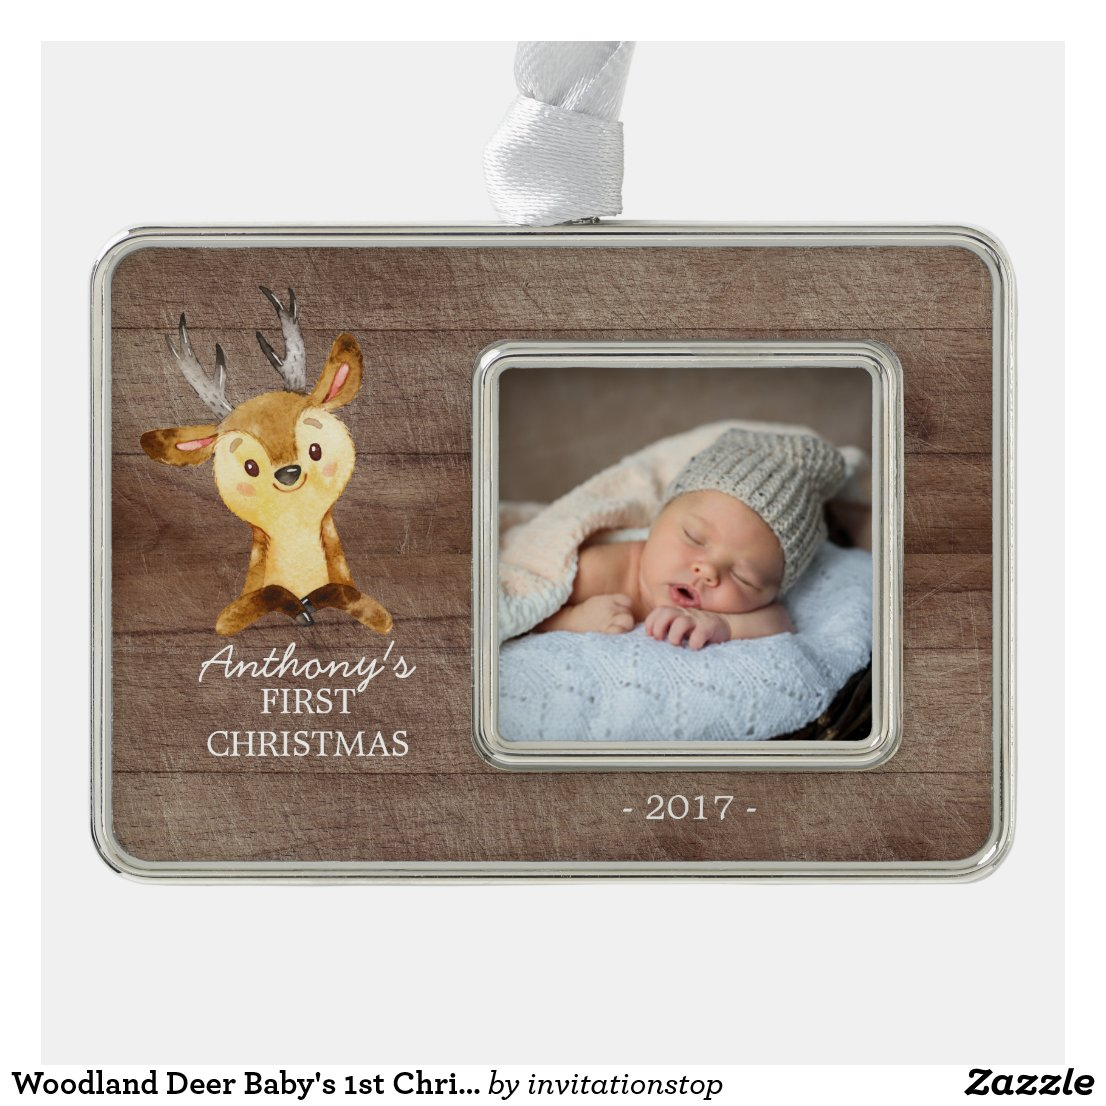 Woodland Deer Baby's 1st Christmas Photo Ornament